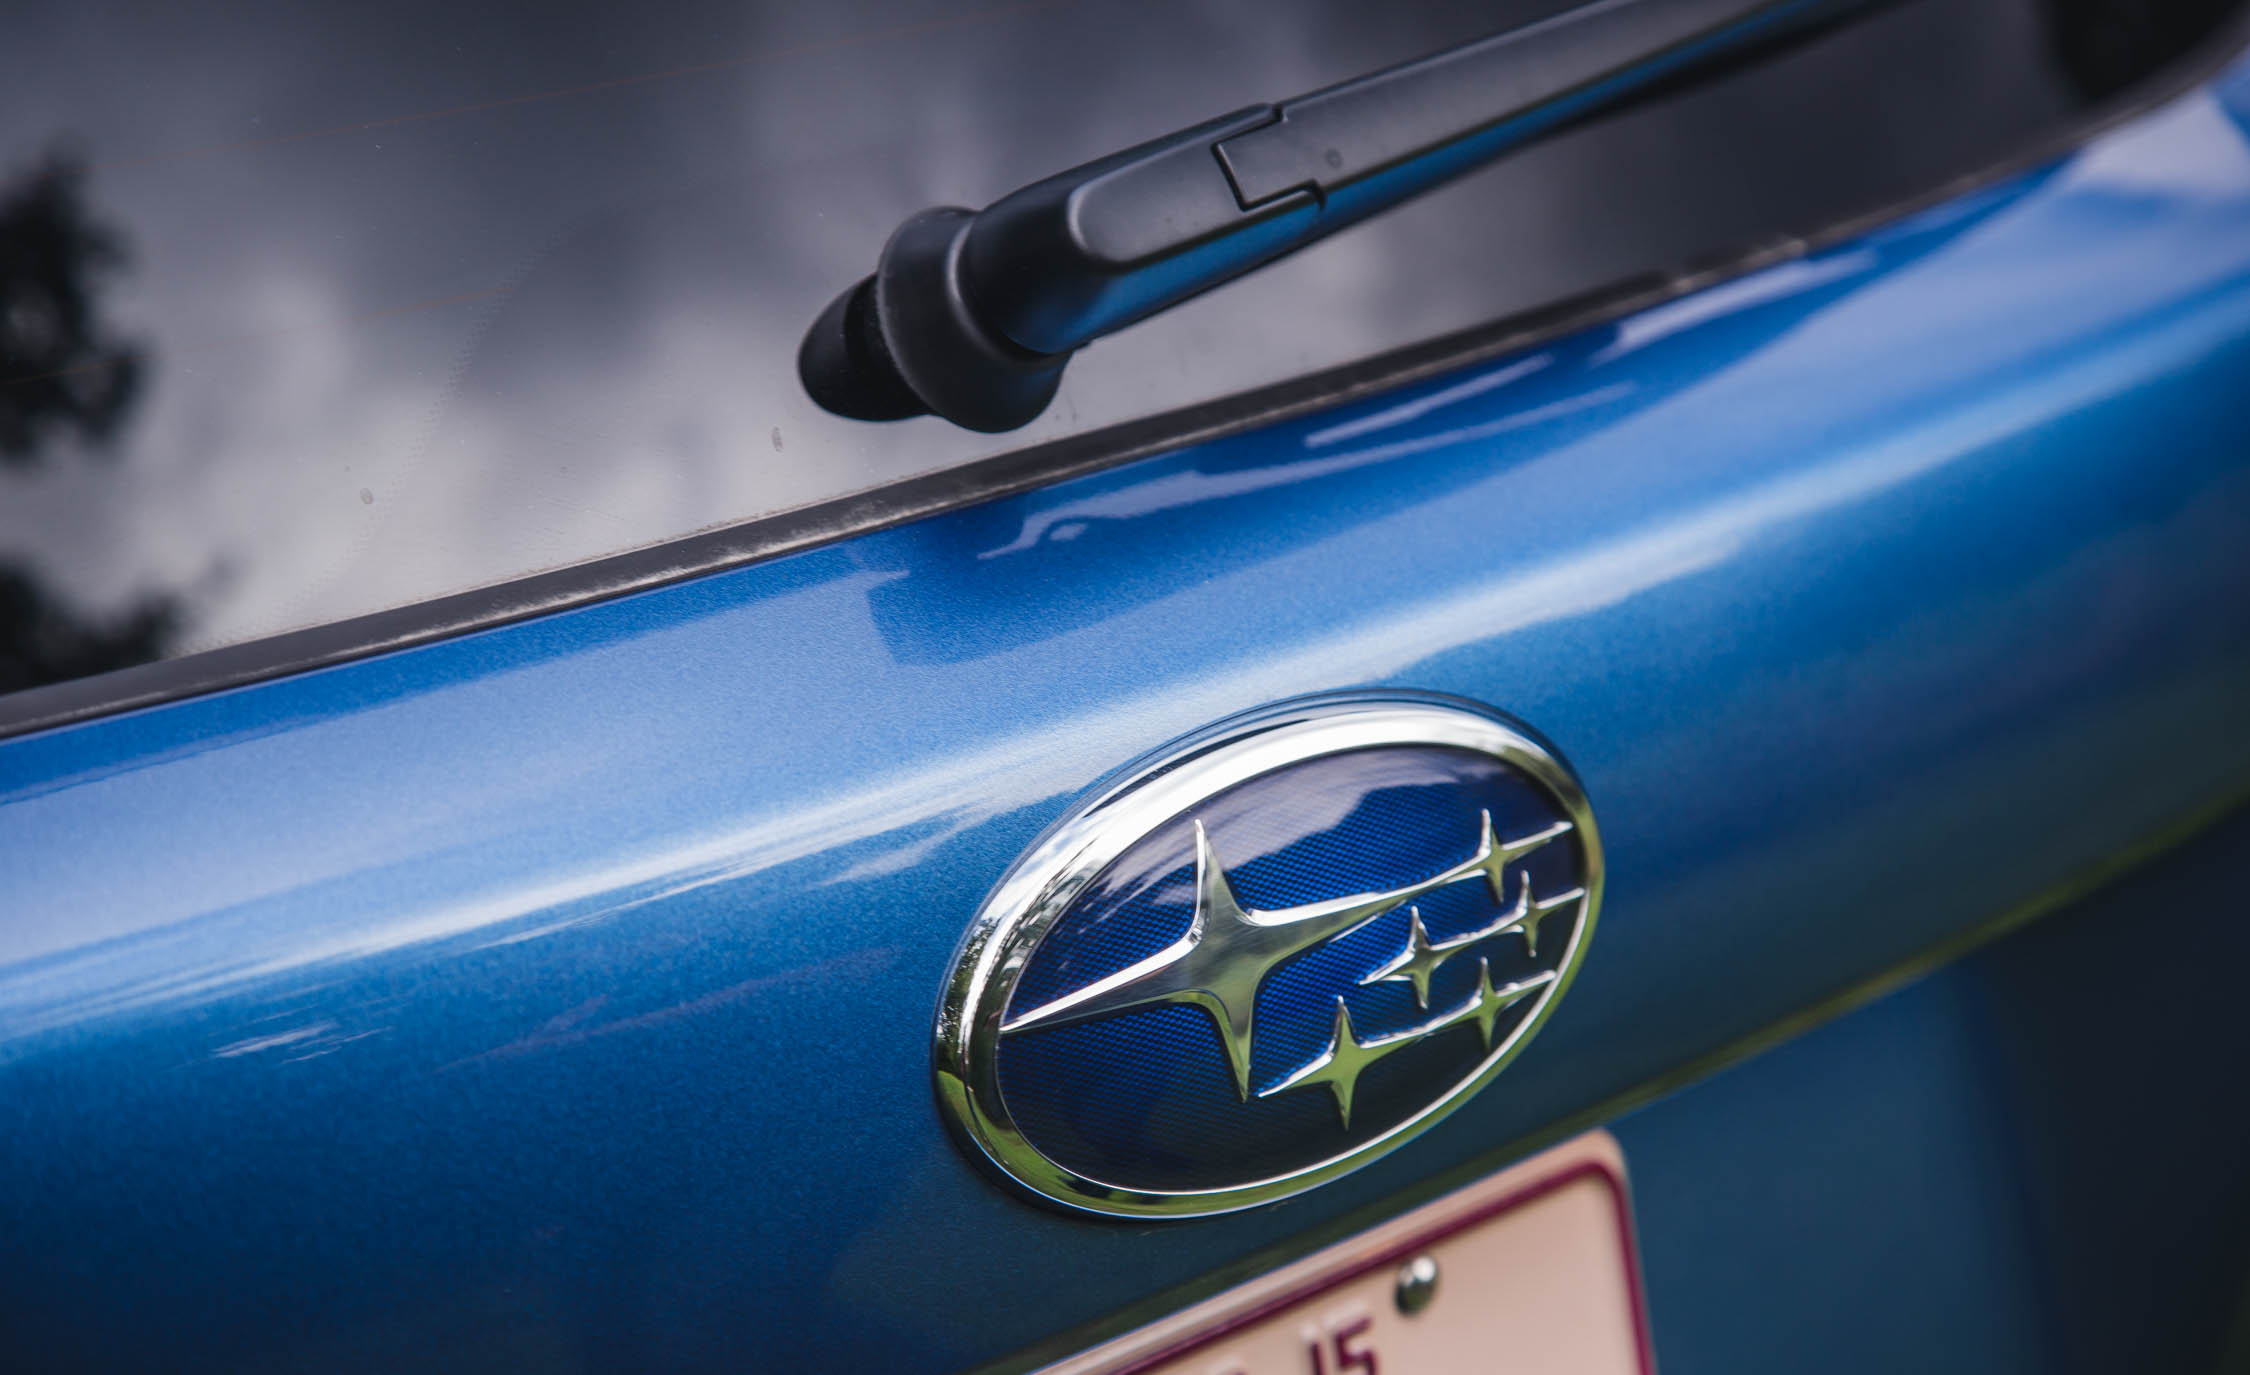 2016 Subaru Forester 2 0xt Touring Exterior Badge Rear (View 24 of 29)